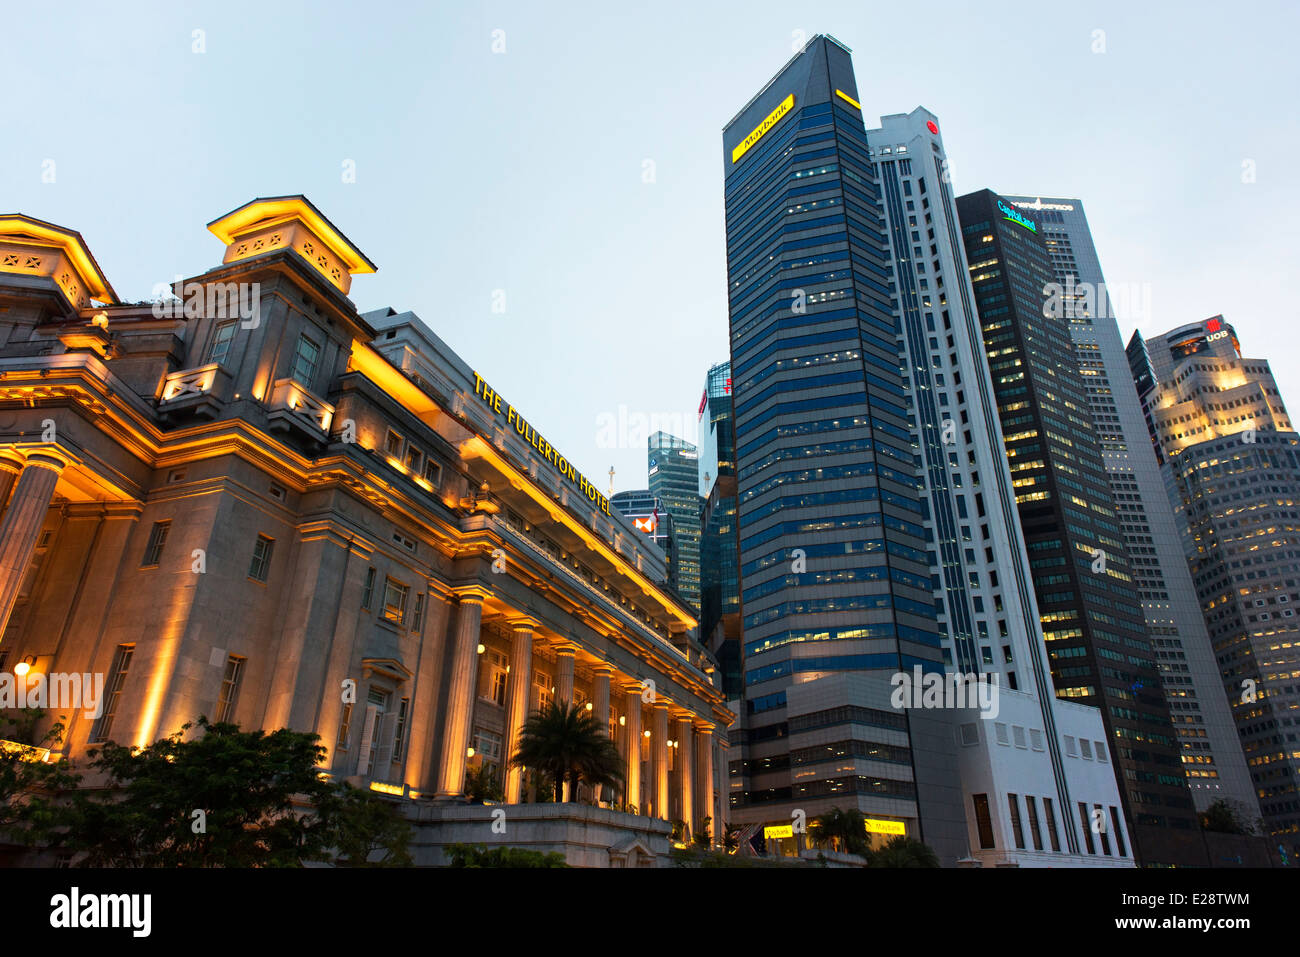 The Fullerton Hotel lit up at dusk with the business district's high rises beyond. - Stock Image